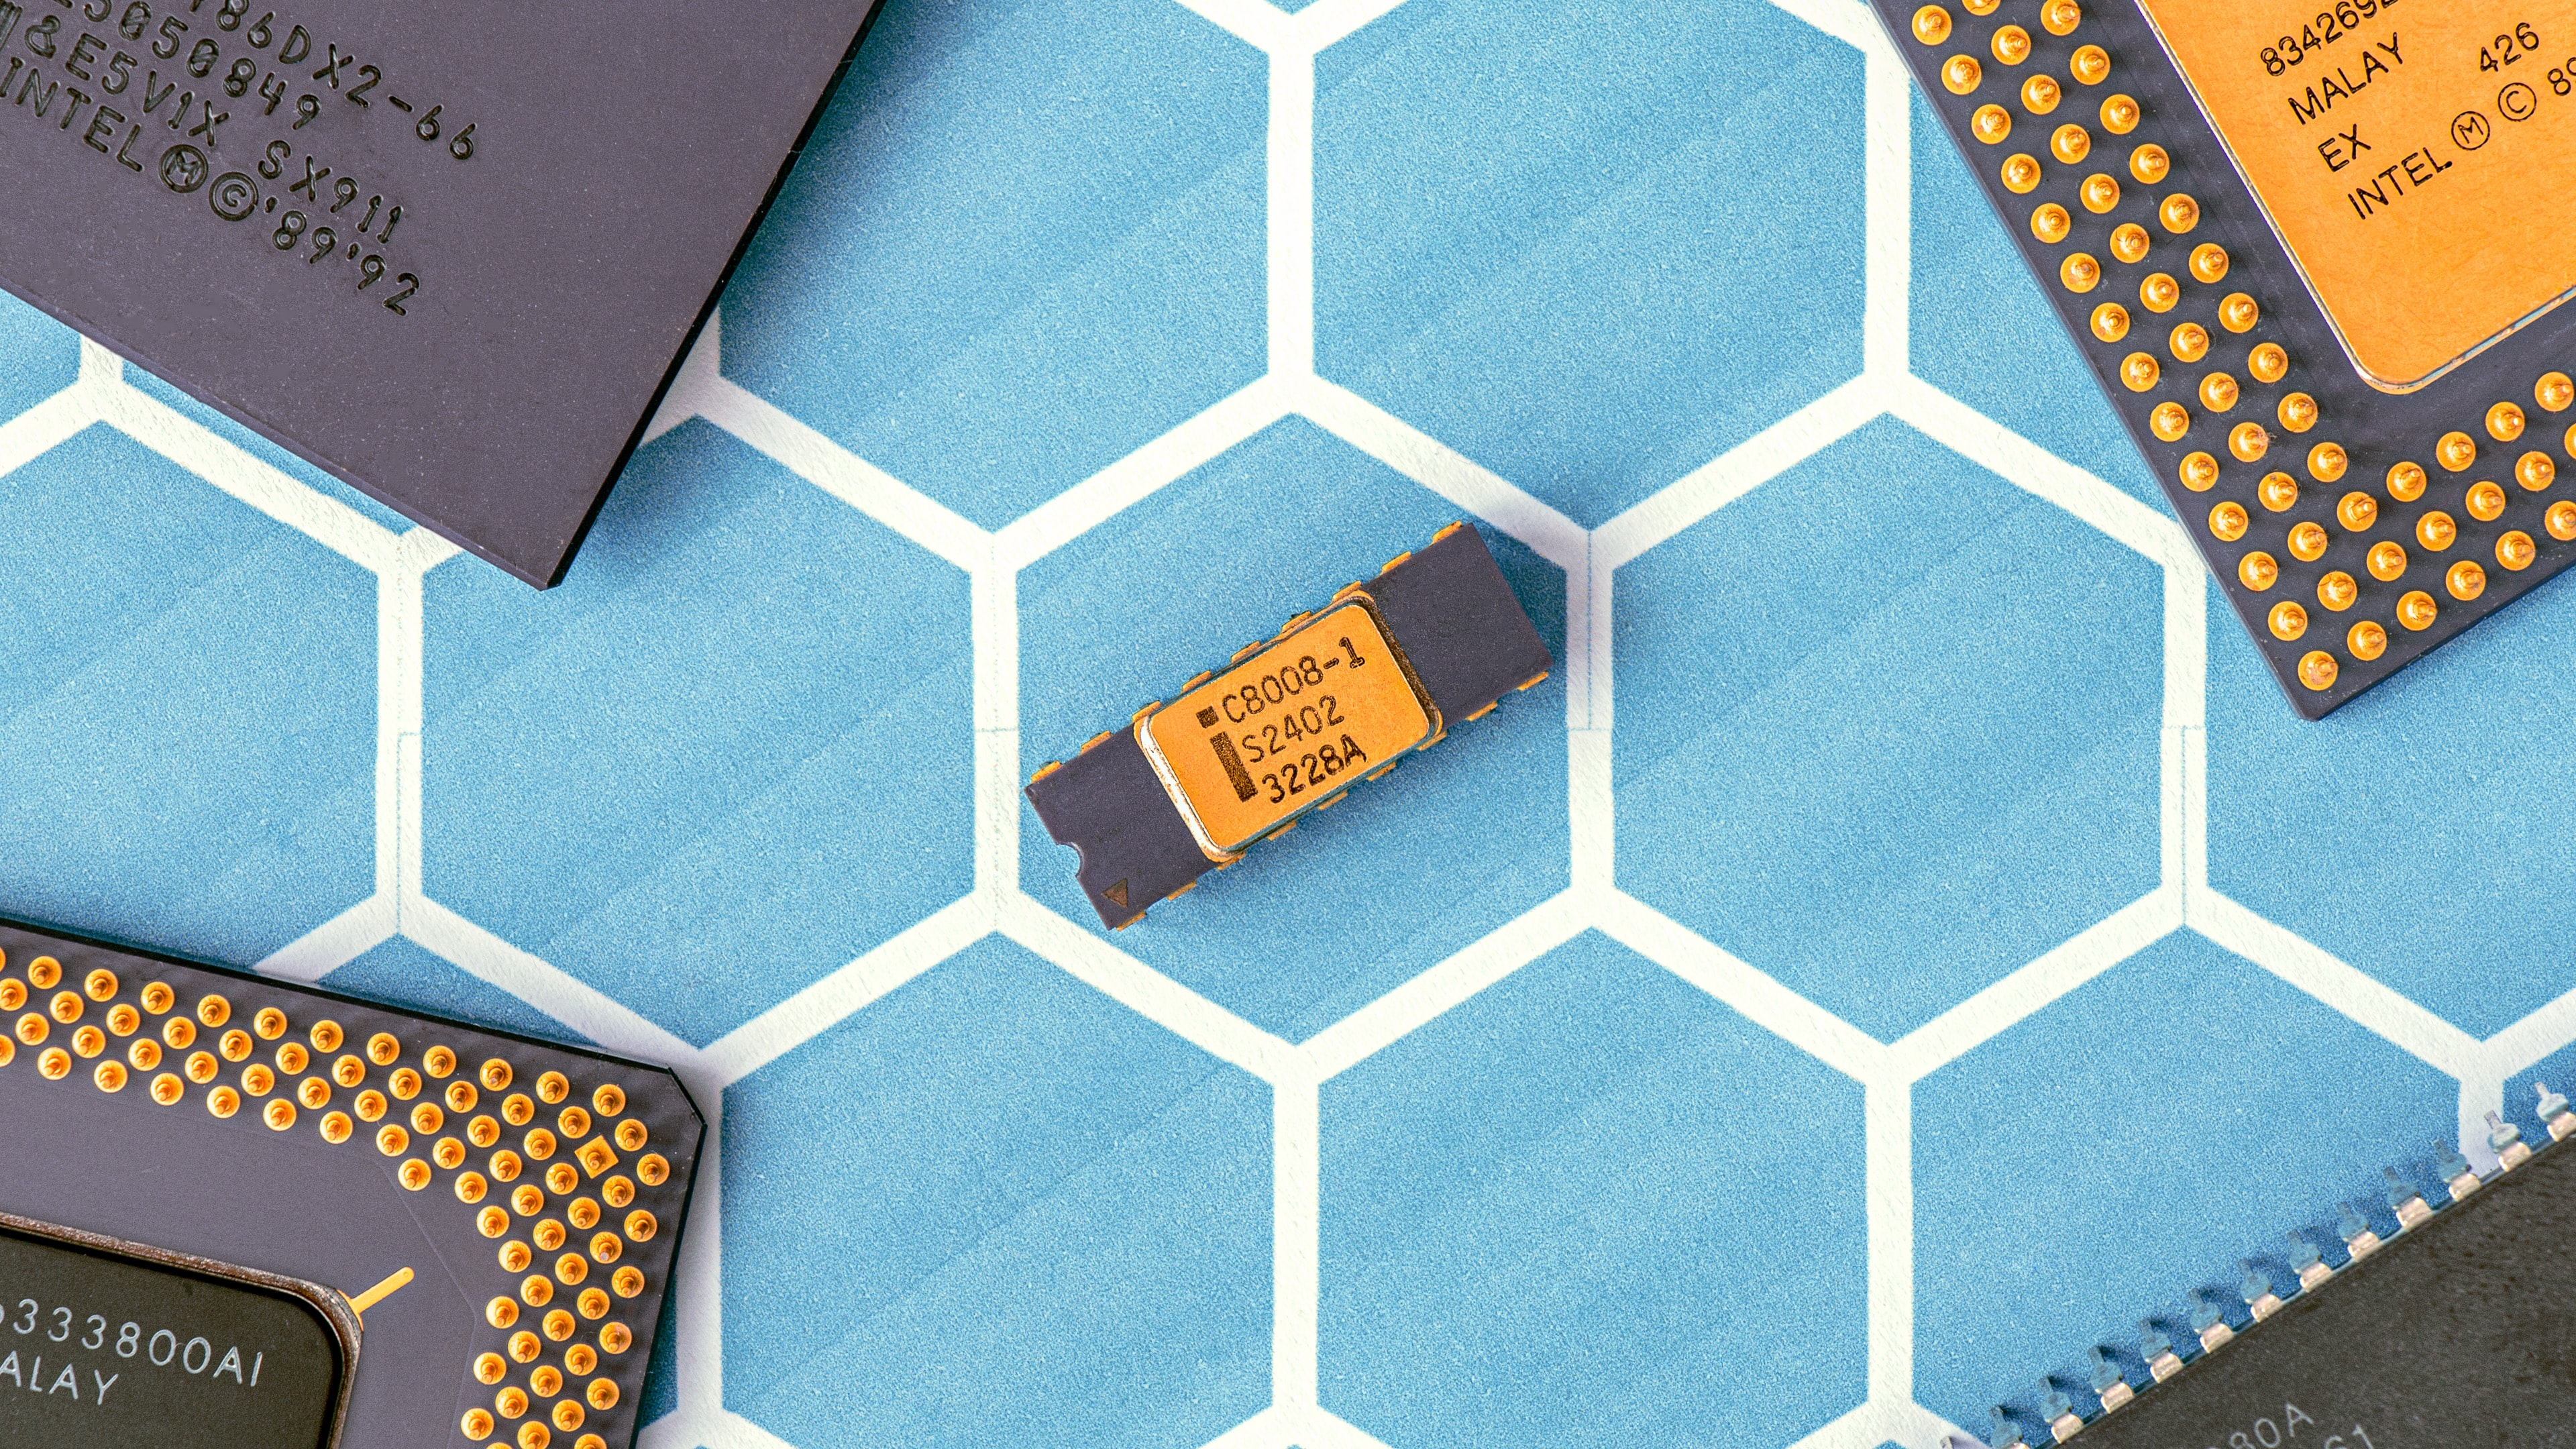 How Are Semiconductors Changing the World?